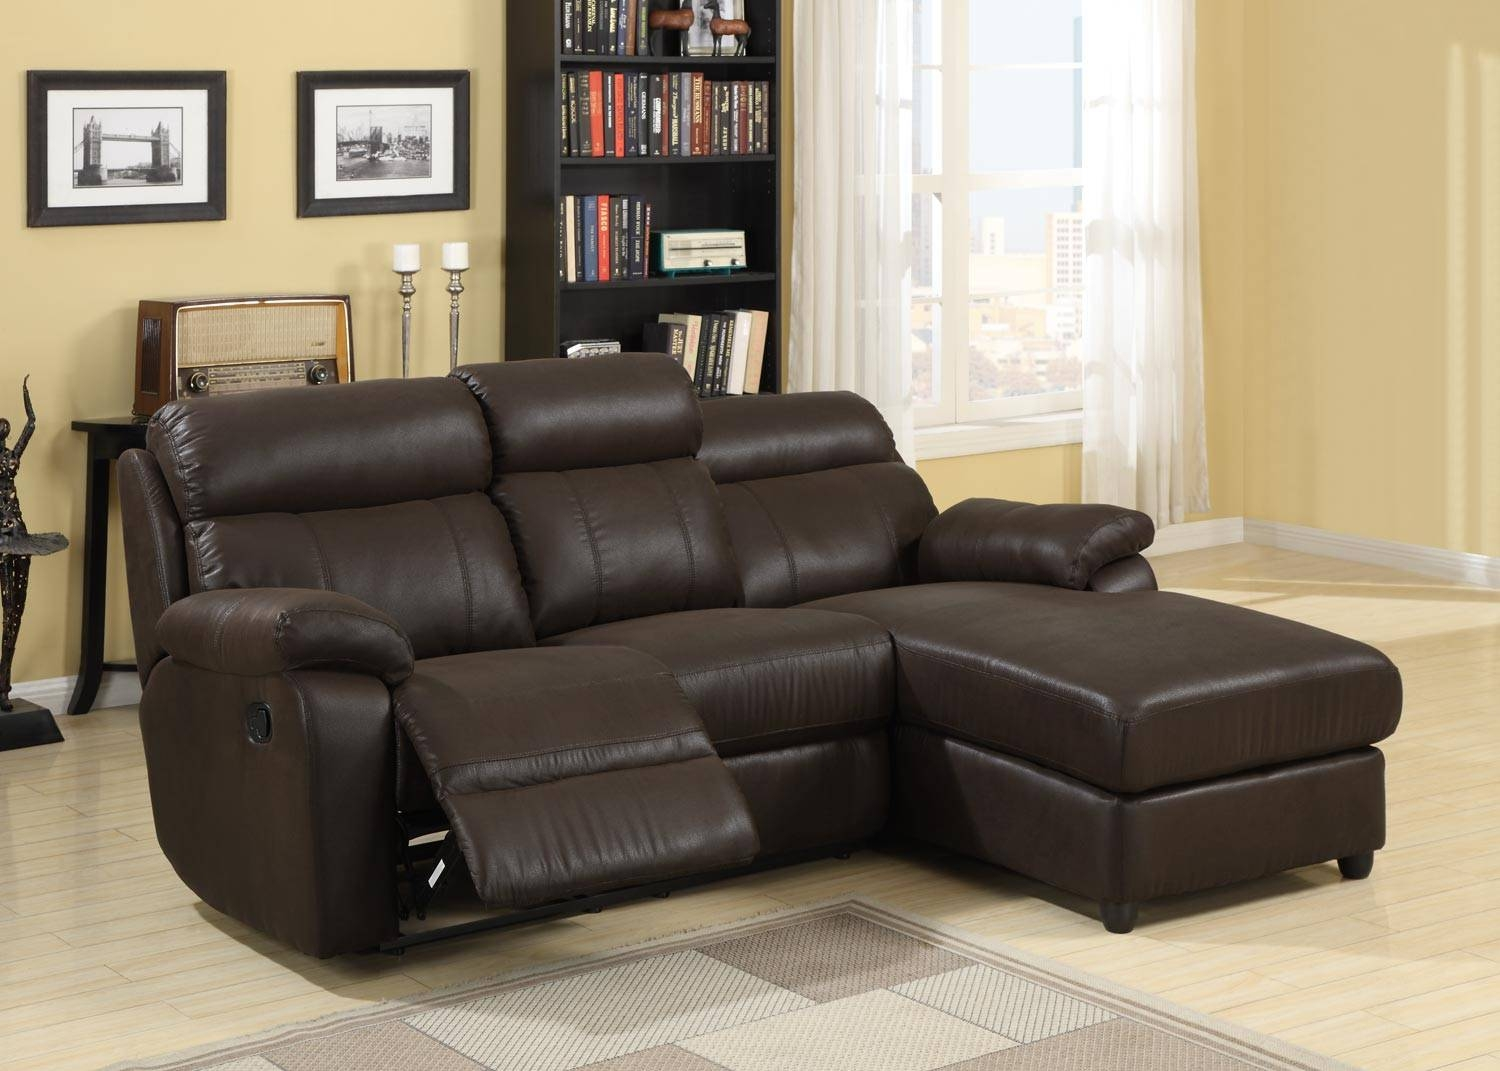 Sectional Sofa With Chaise Lounge And Recliner | Tehranmix Decoration pertaining to Sectional Sofas for Small Spaces With Recliners (Image 16 of 30)